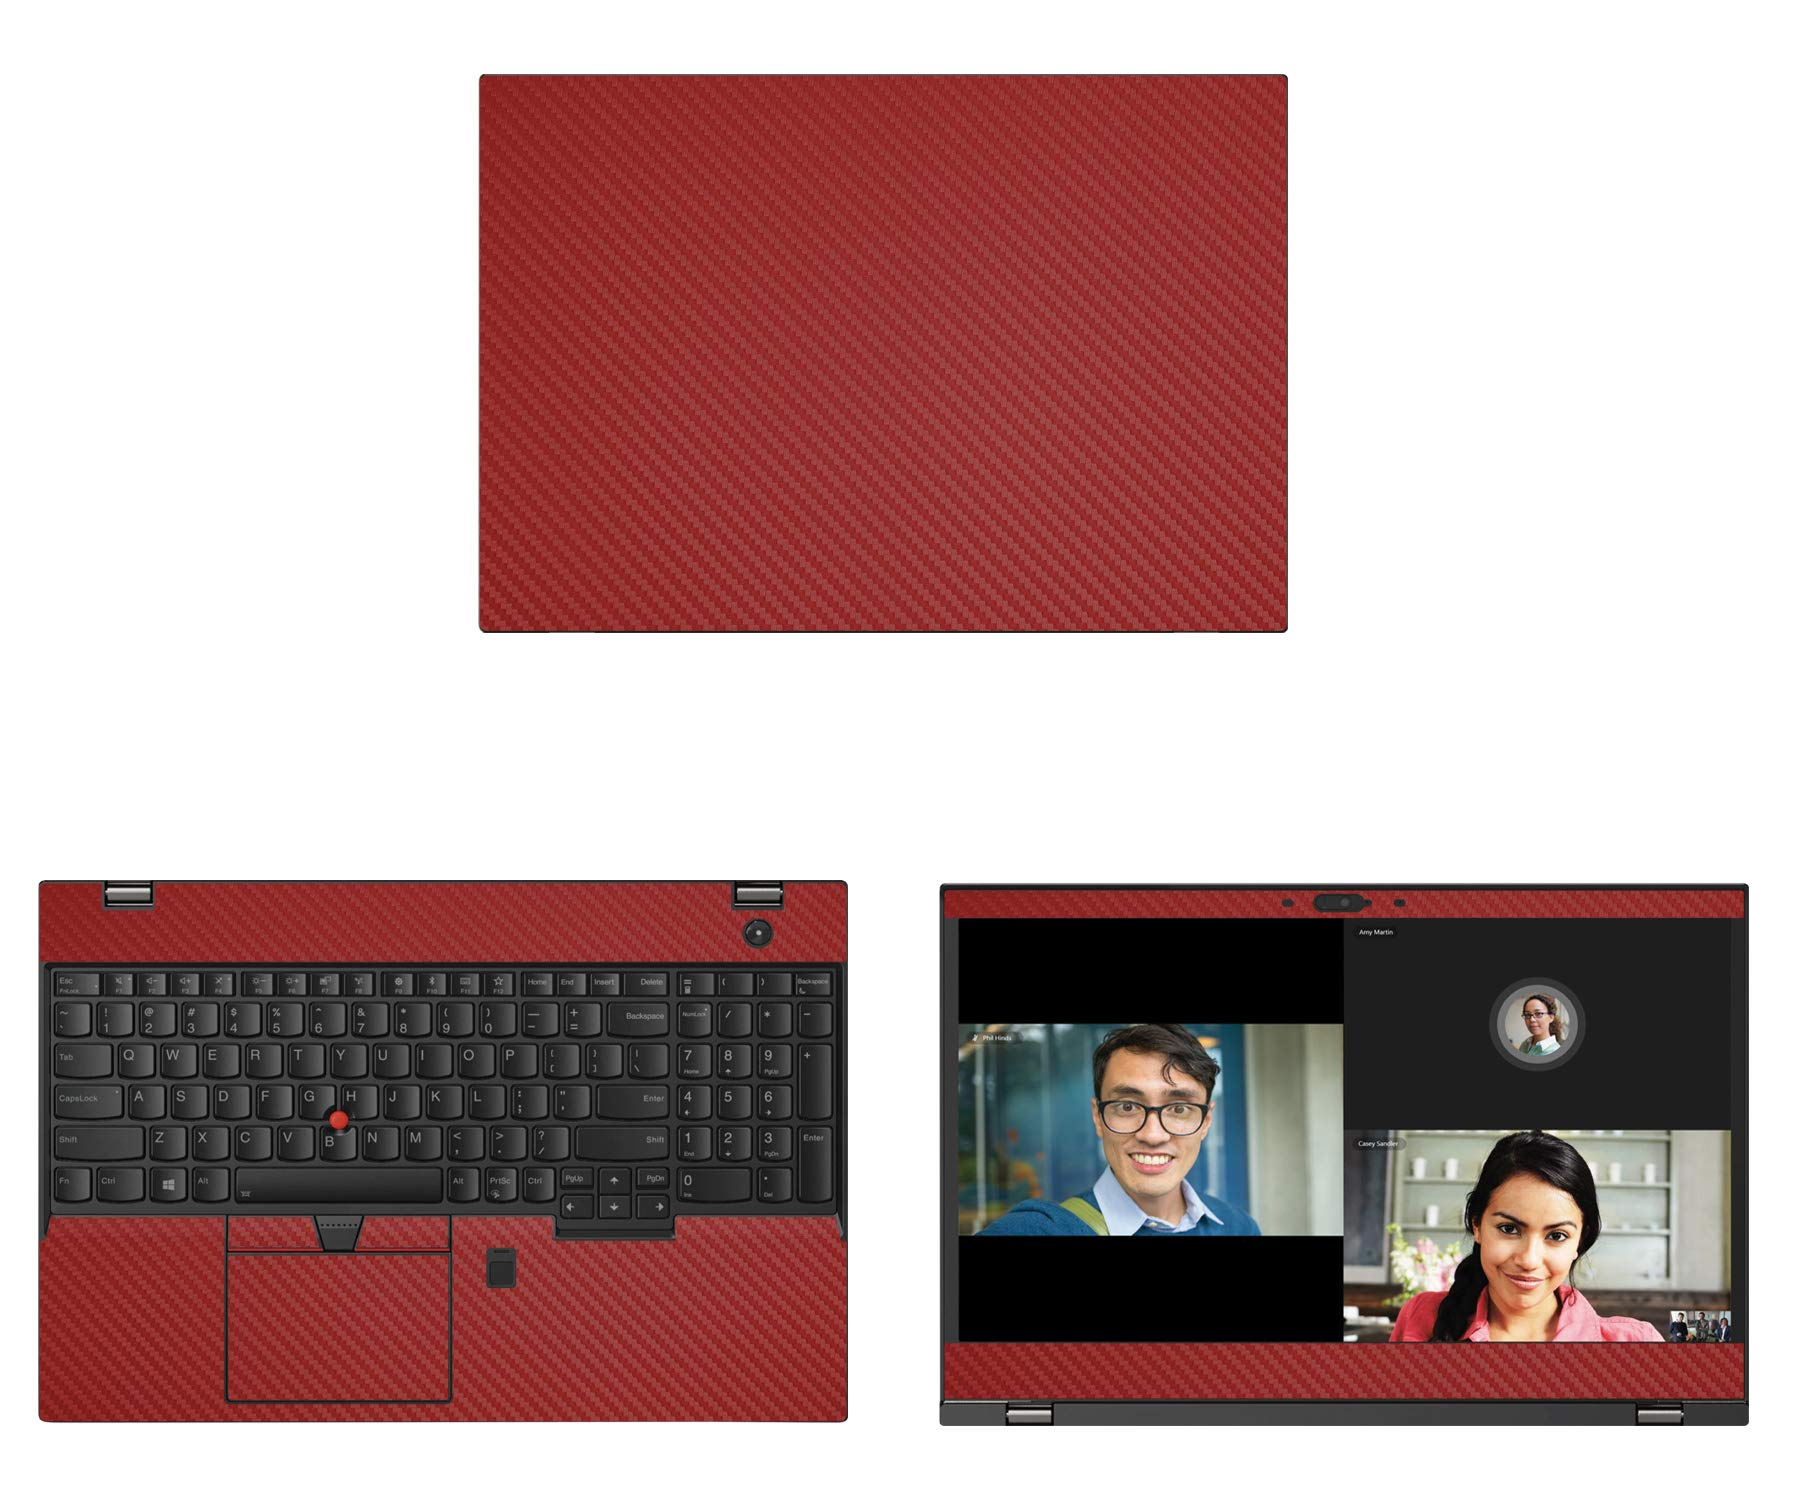 Decalrus - Protective Decal for Lenovo ThinkPad T580 (15.6'' Screen) Laptop RED Carbon Fiber Skin case Cover wrap CFlenovoThnkPad15_T580Red